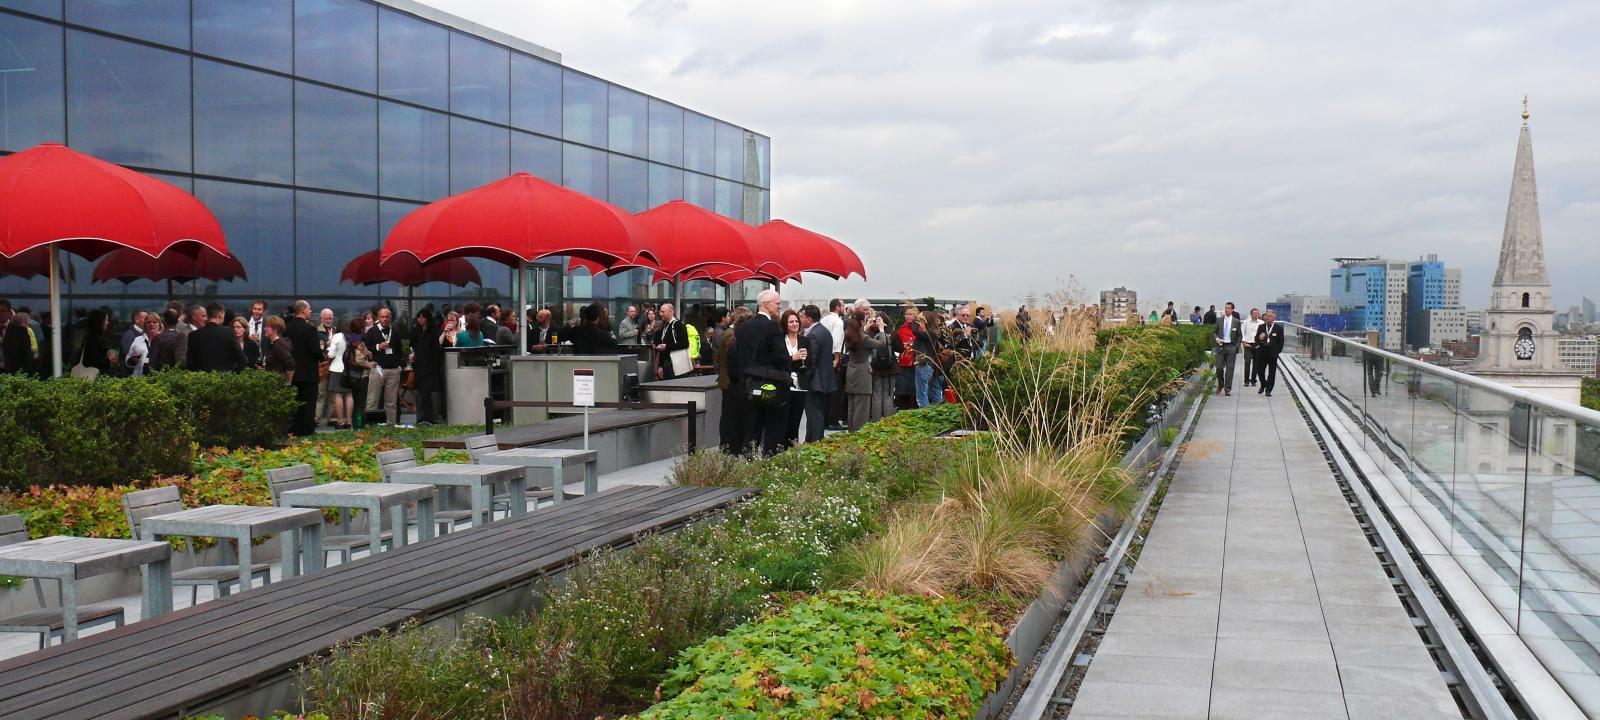 Event on a roof garden in the city